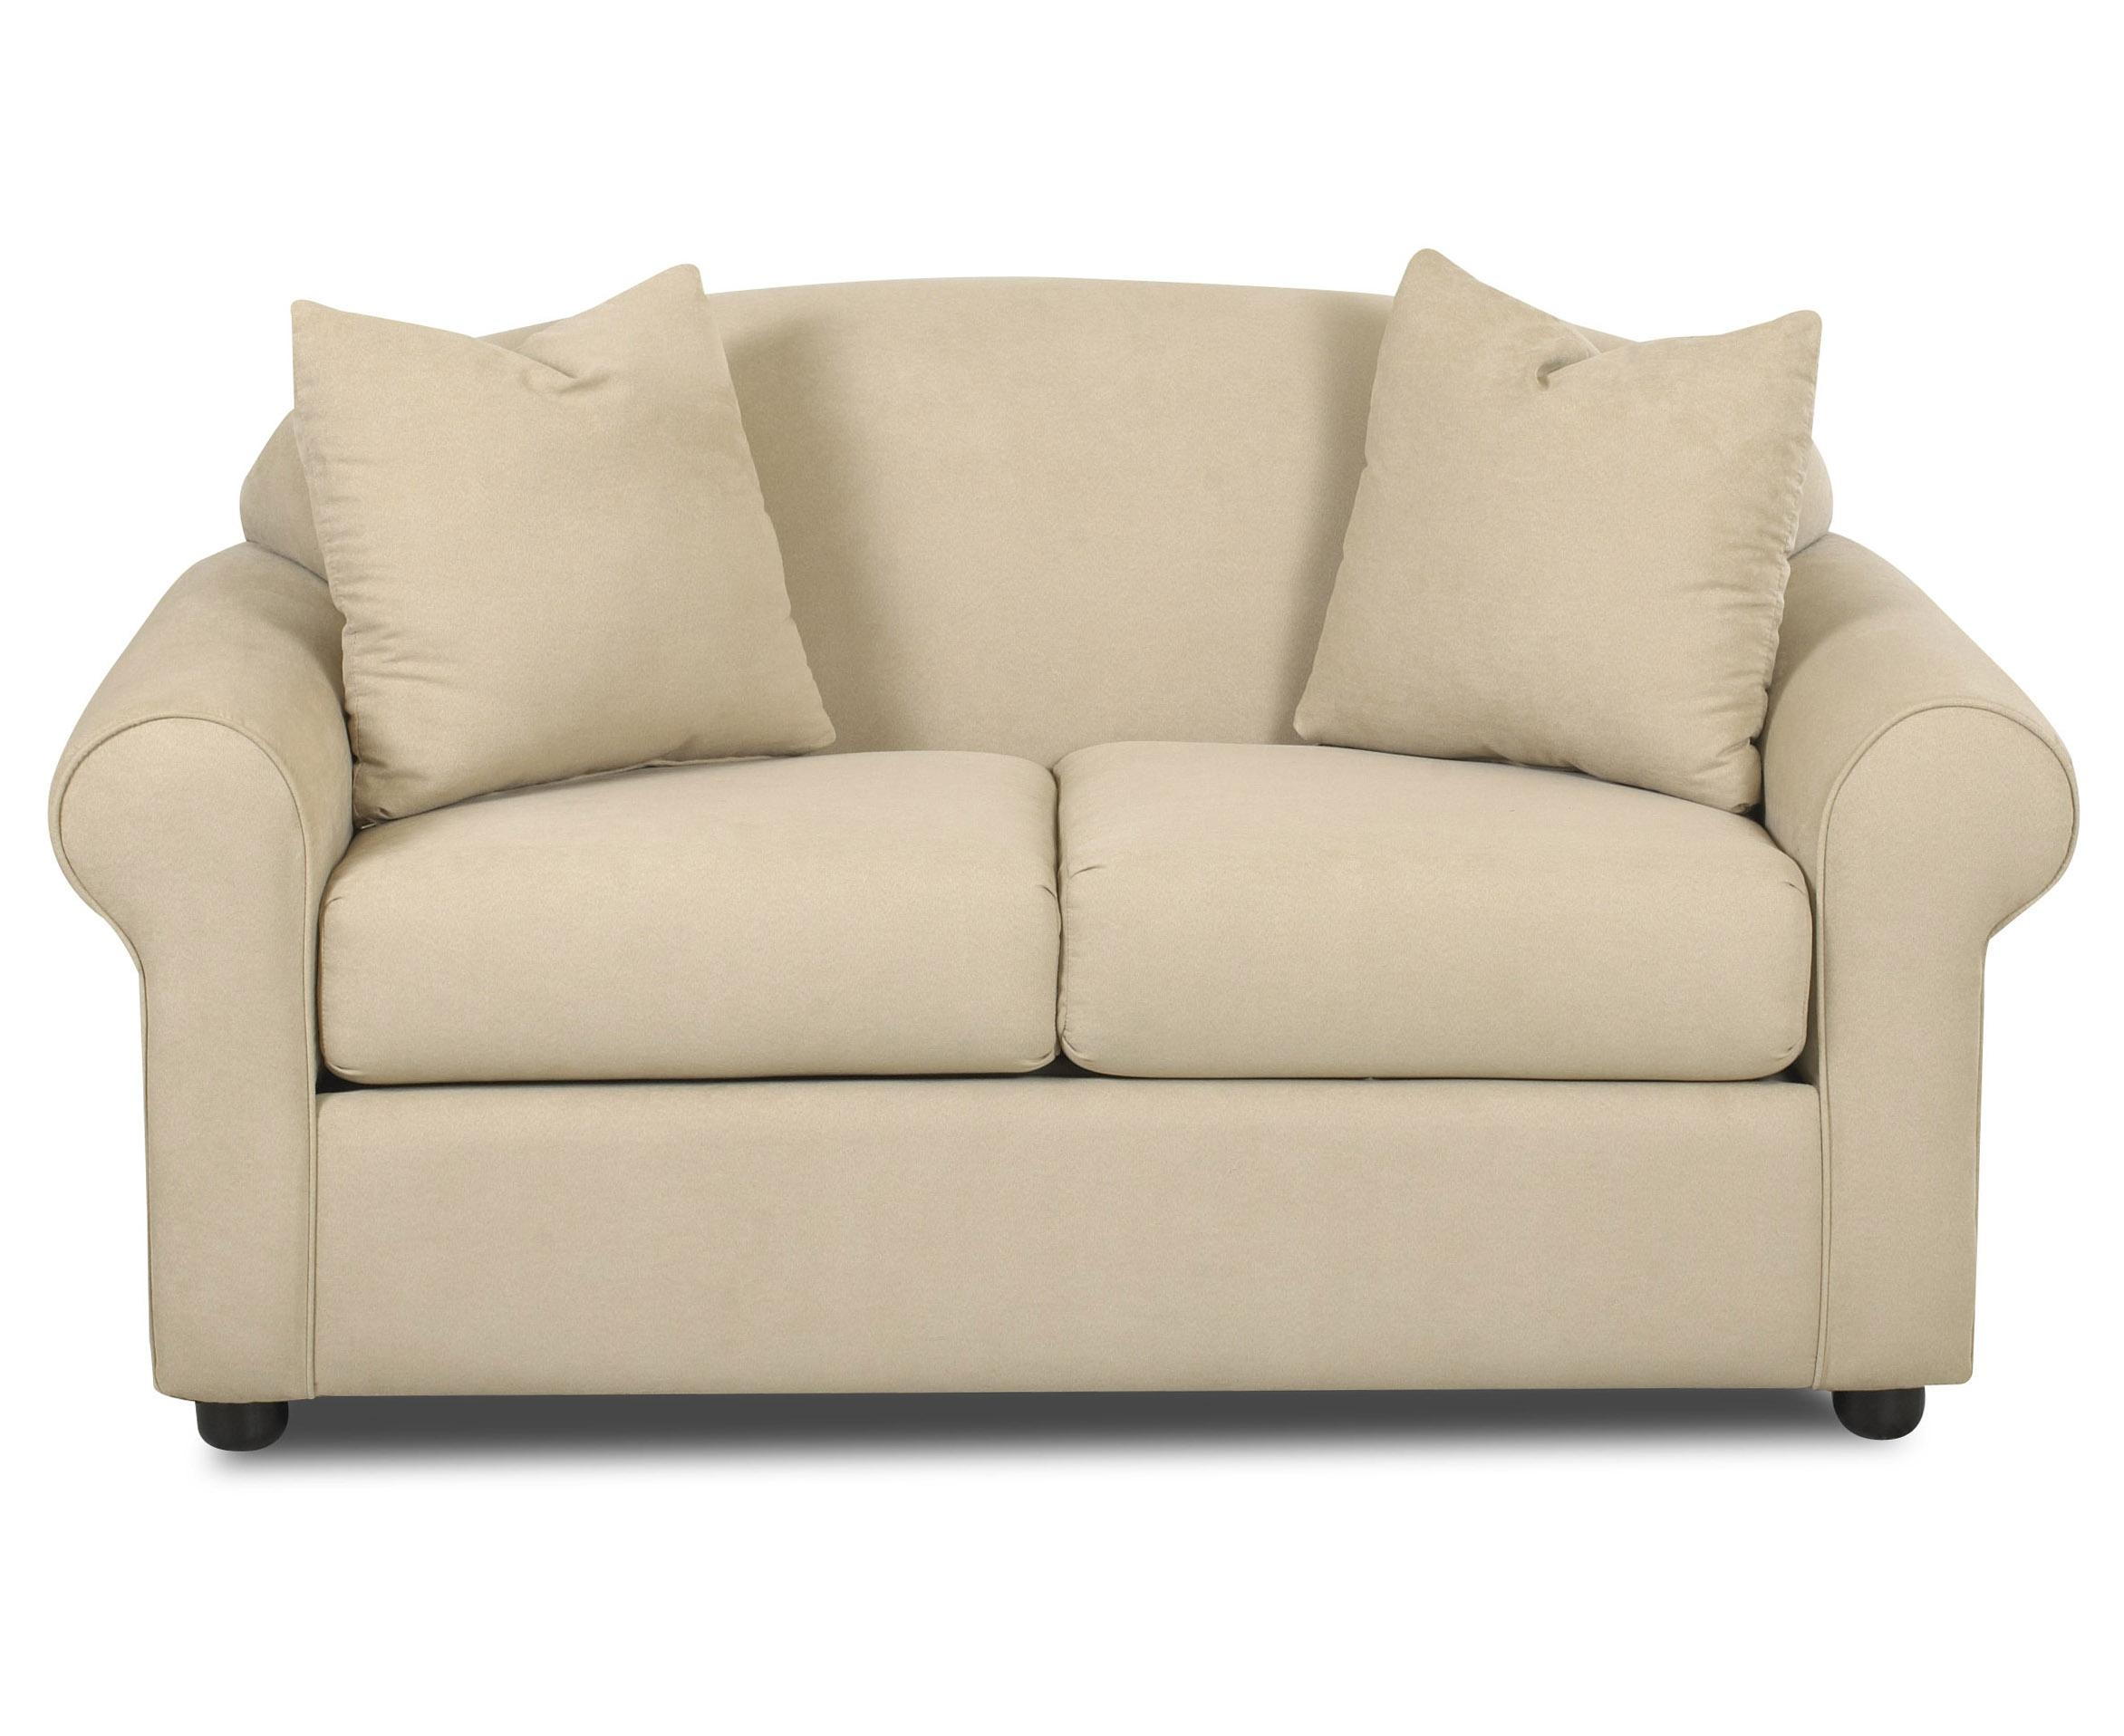 Thomasville Sleeper Sofa Intended For Small Sofas And Chairs (Image 15 of 15)